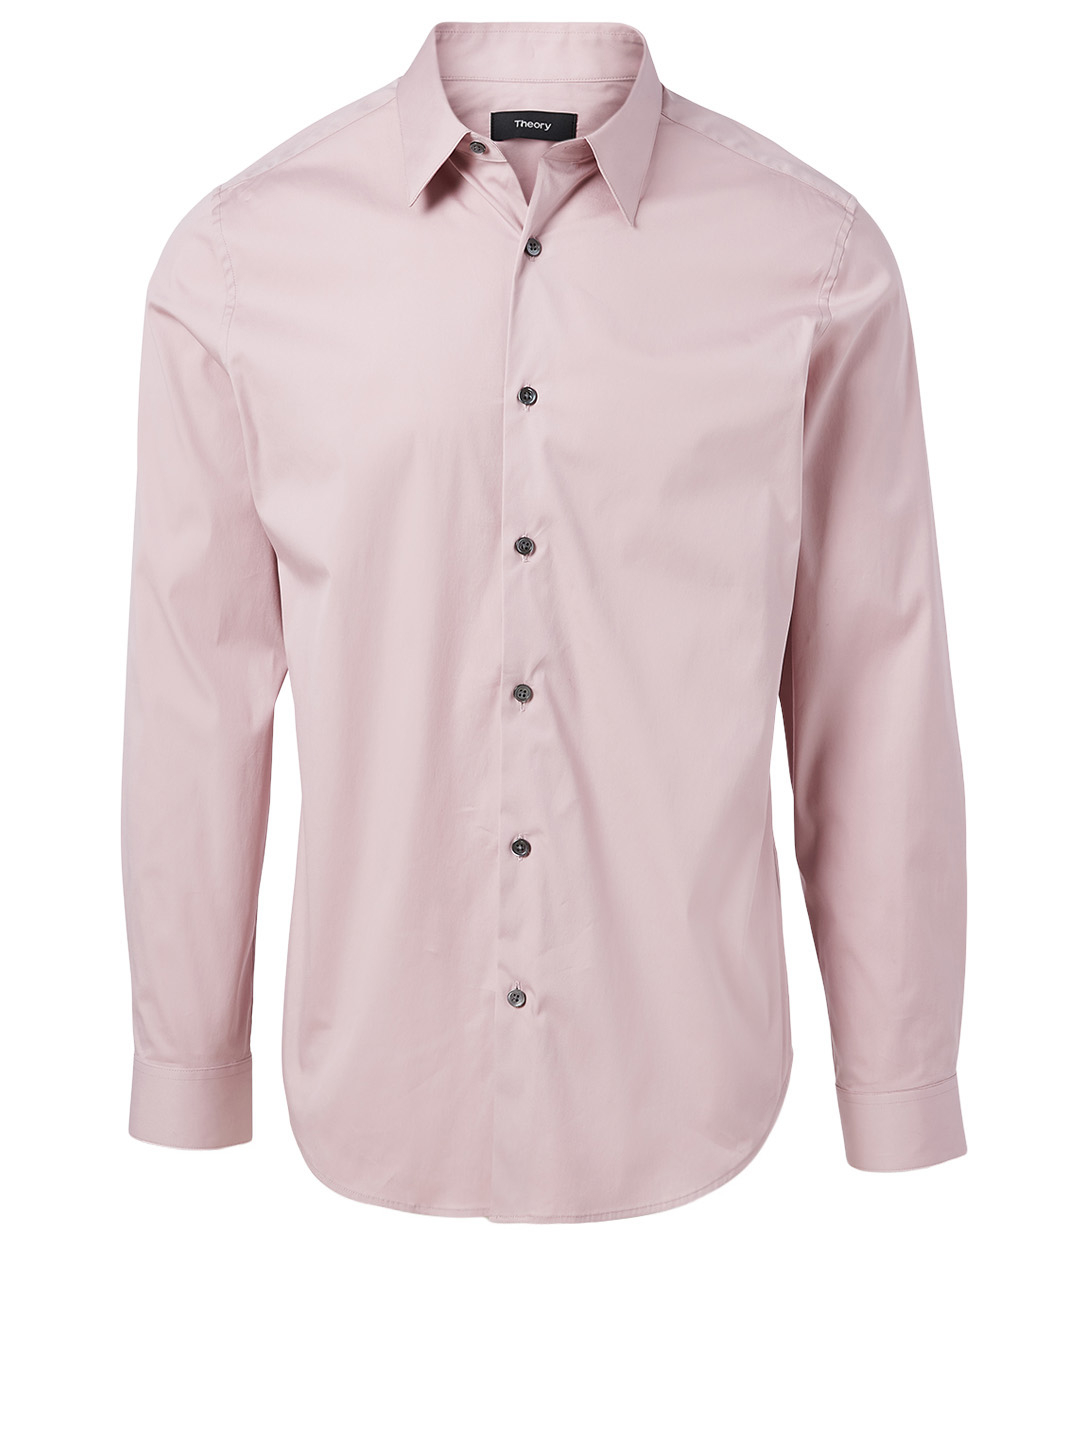 THEORY Good Cotton Tailored Shirt Men's Purple